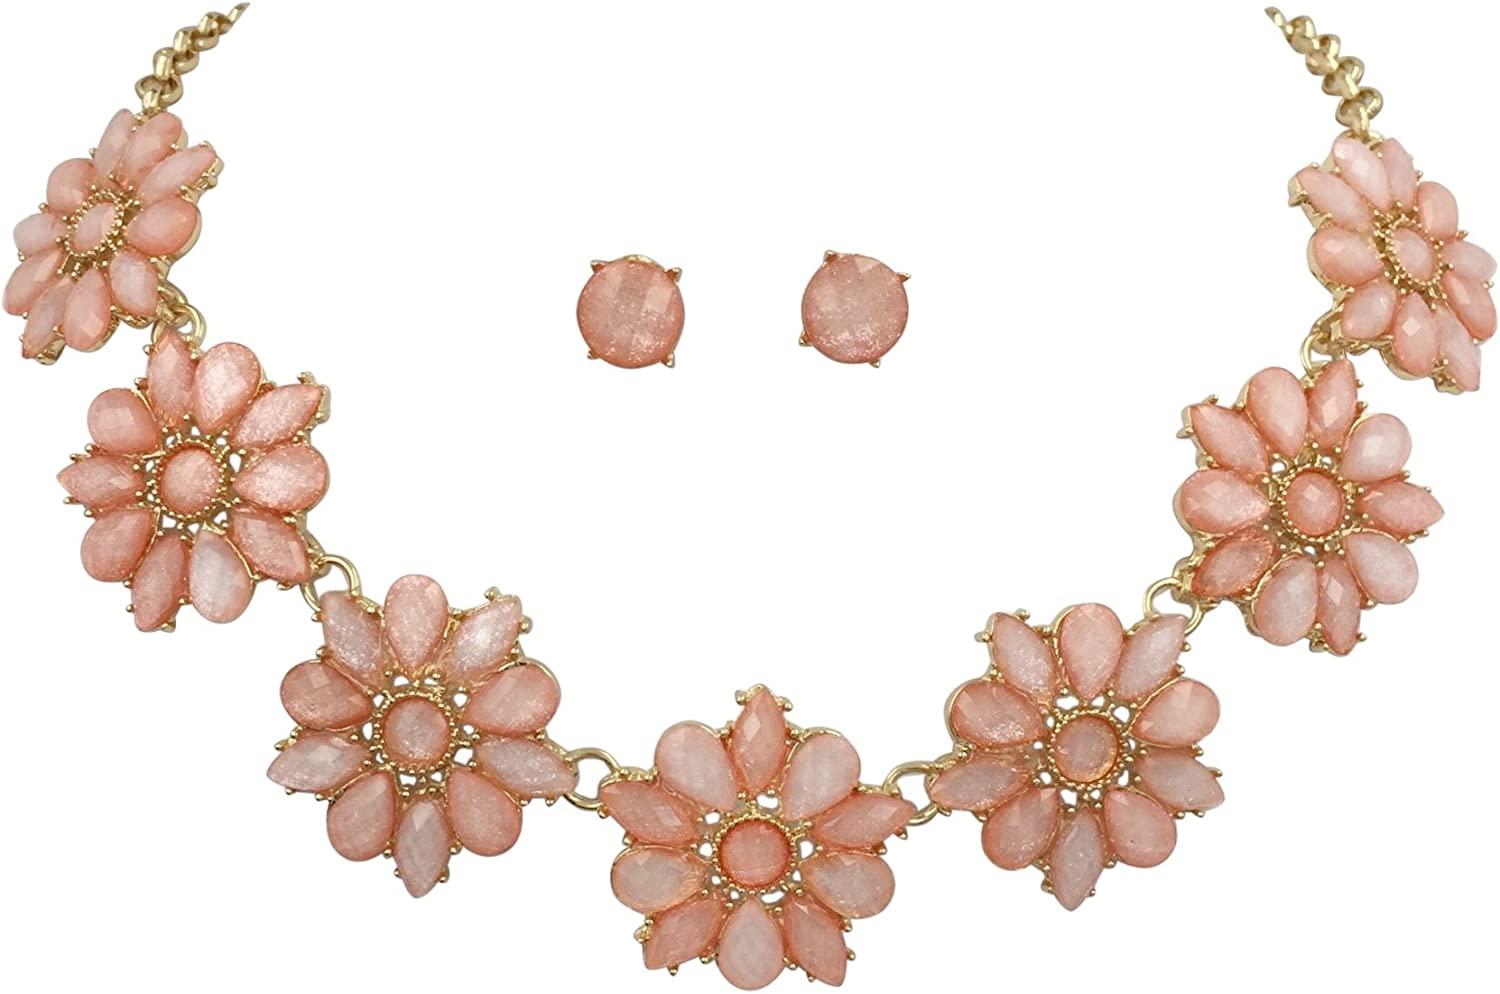 Gypsy Jewels Daisy Dot Flower Cluster Bubble Gold Tone Boutique Statement Necklace & Earrings Set